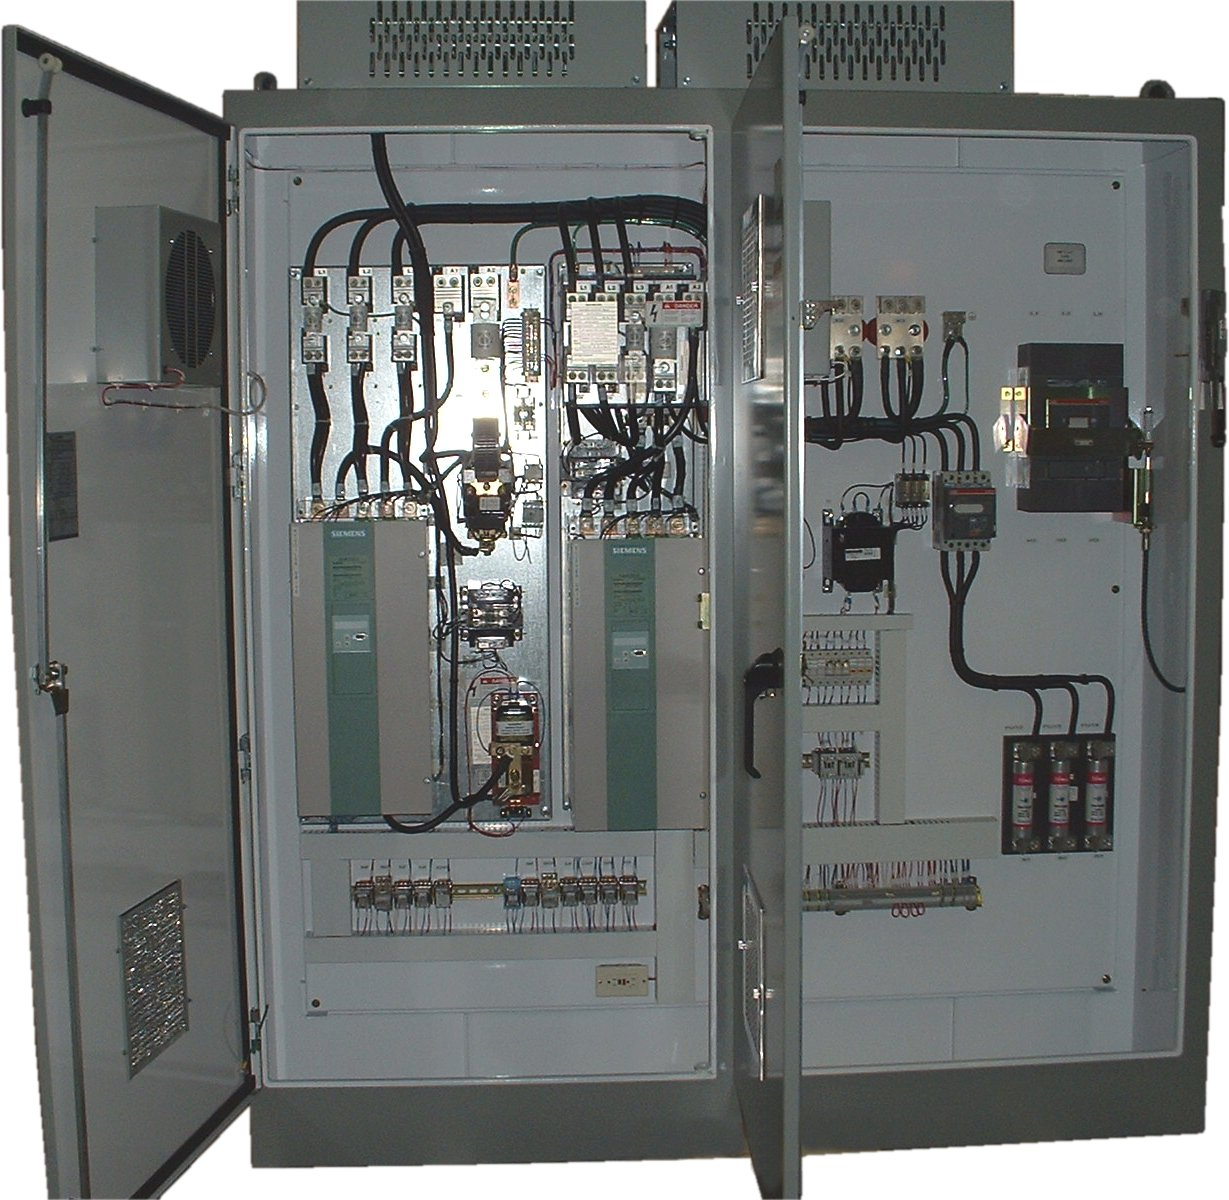 Siemens Vfd Drives Wiring Diagram 33 Images Variable Frequency Drive Dc Slitter Recoiler Braner Usa 395 009 Interior Joliet Technologies Ac Controllers And Vsd By